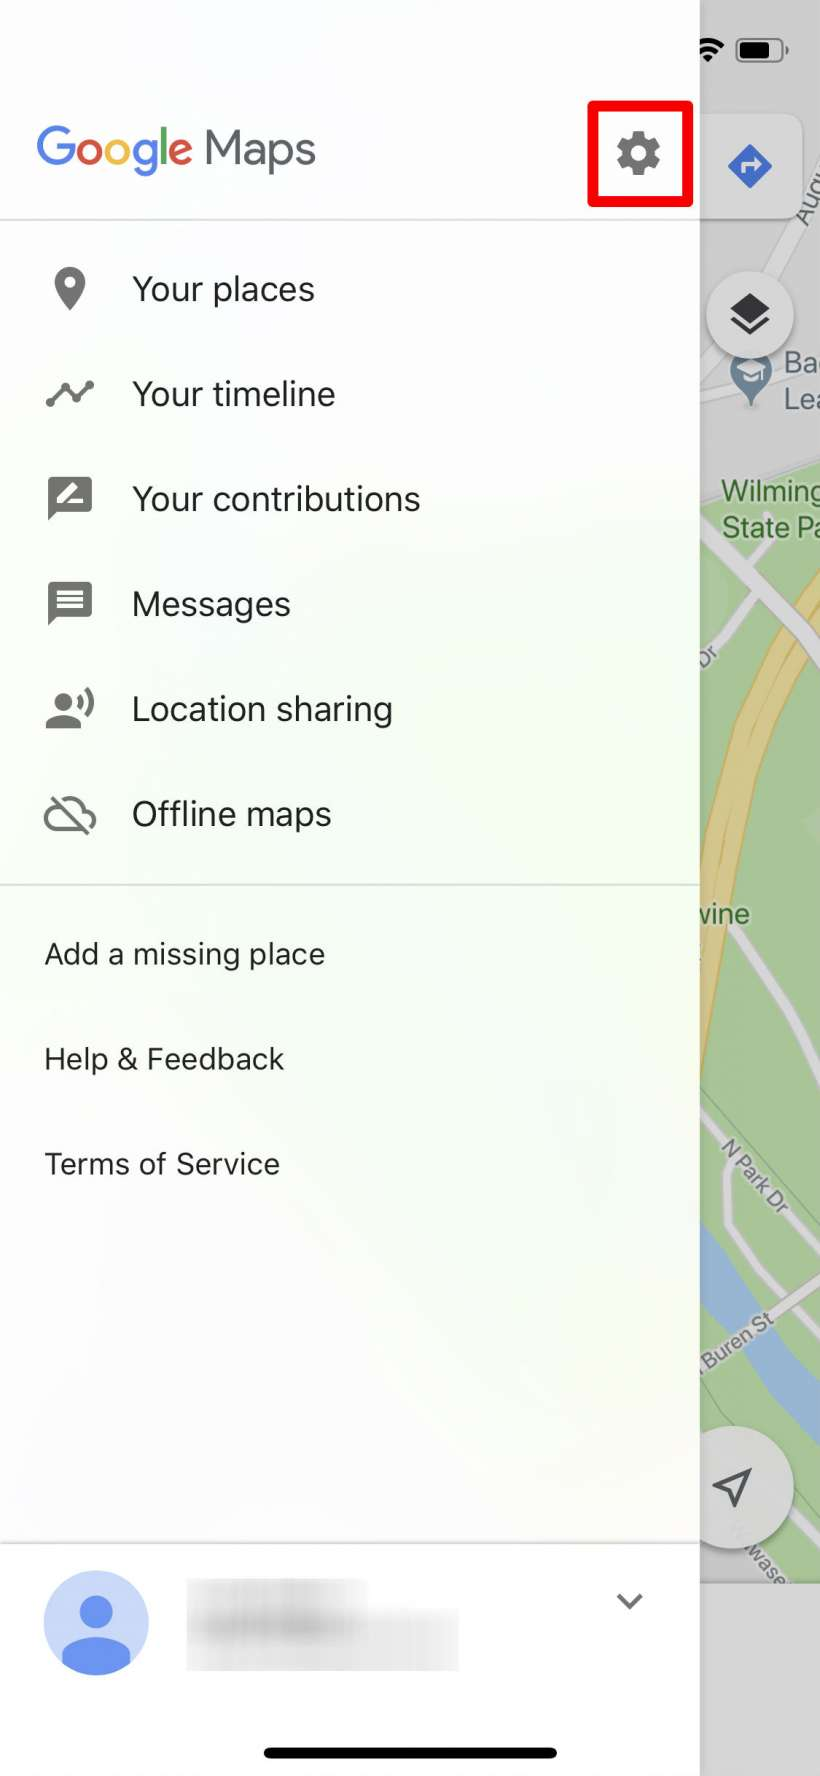 navvoice-h Does Google Maps Have Voice on world voice, aflac voice, android voice, find your voice, lync voice, no voice, your tone of voice, allstate voice, search by voice, passive voice, adobe voice,